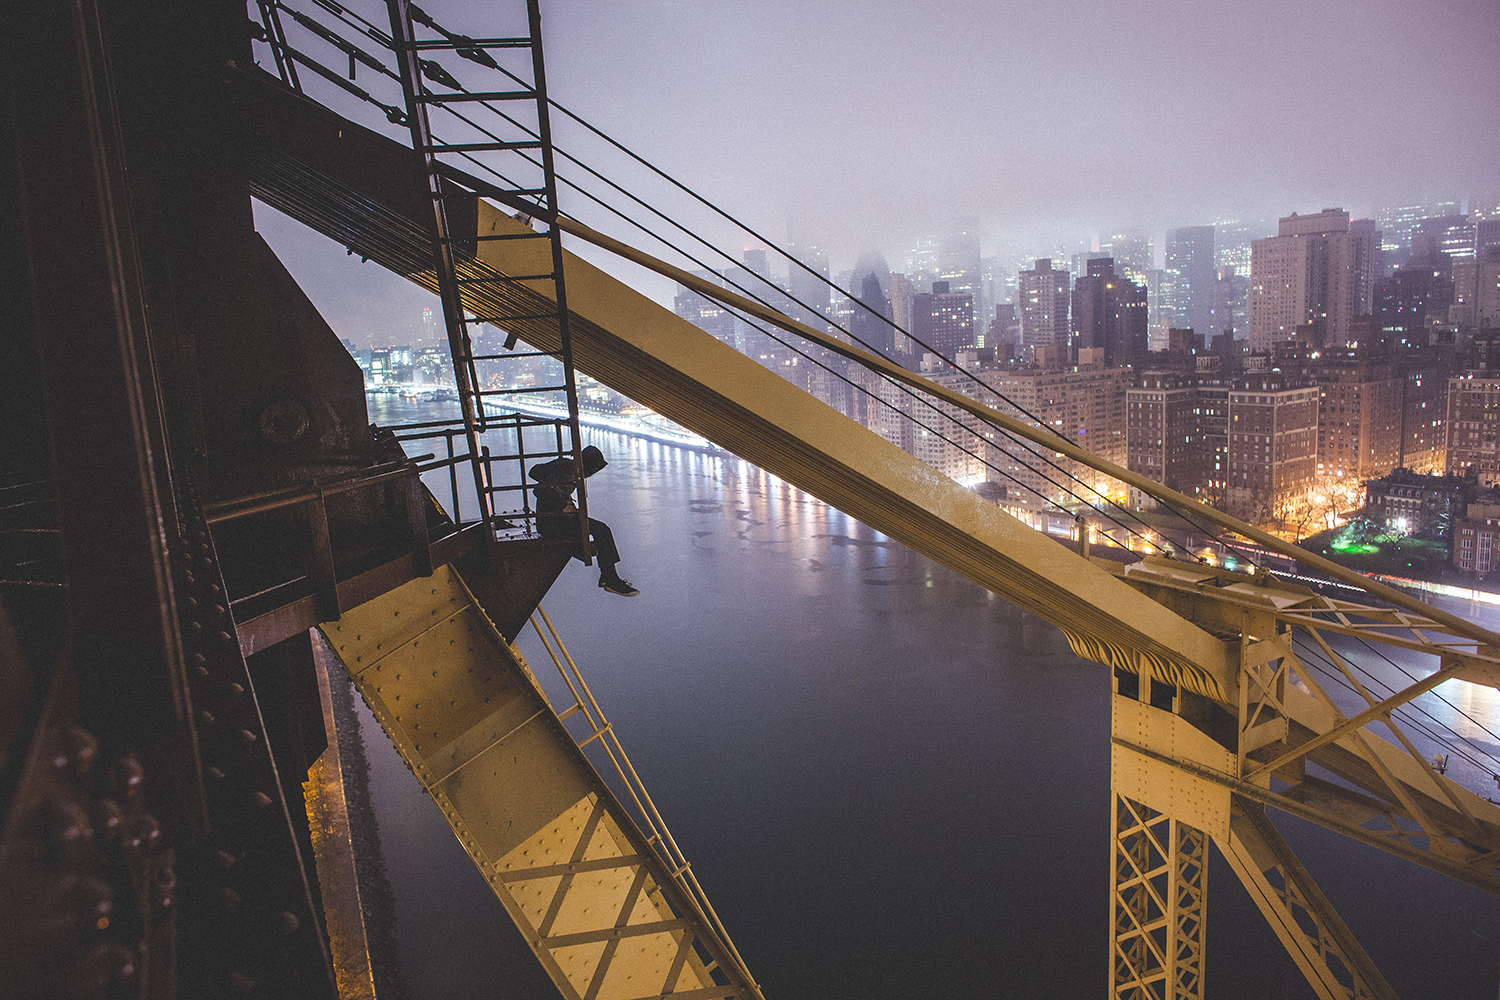 @night.shift has been rooftopping for eight months. New York City December 2014